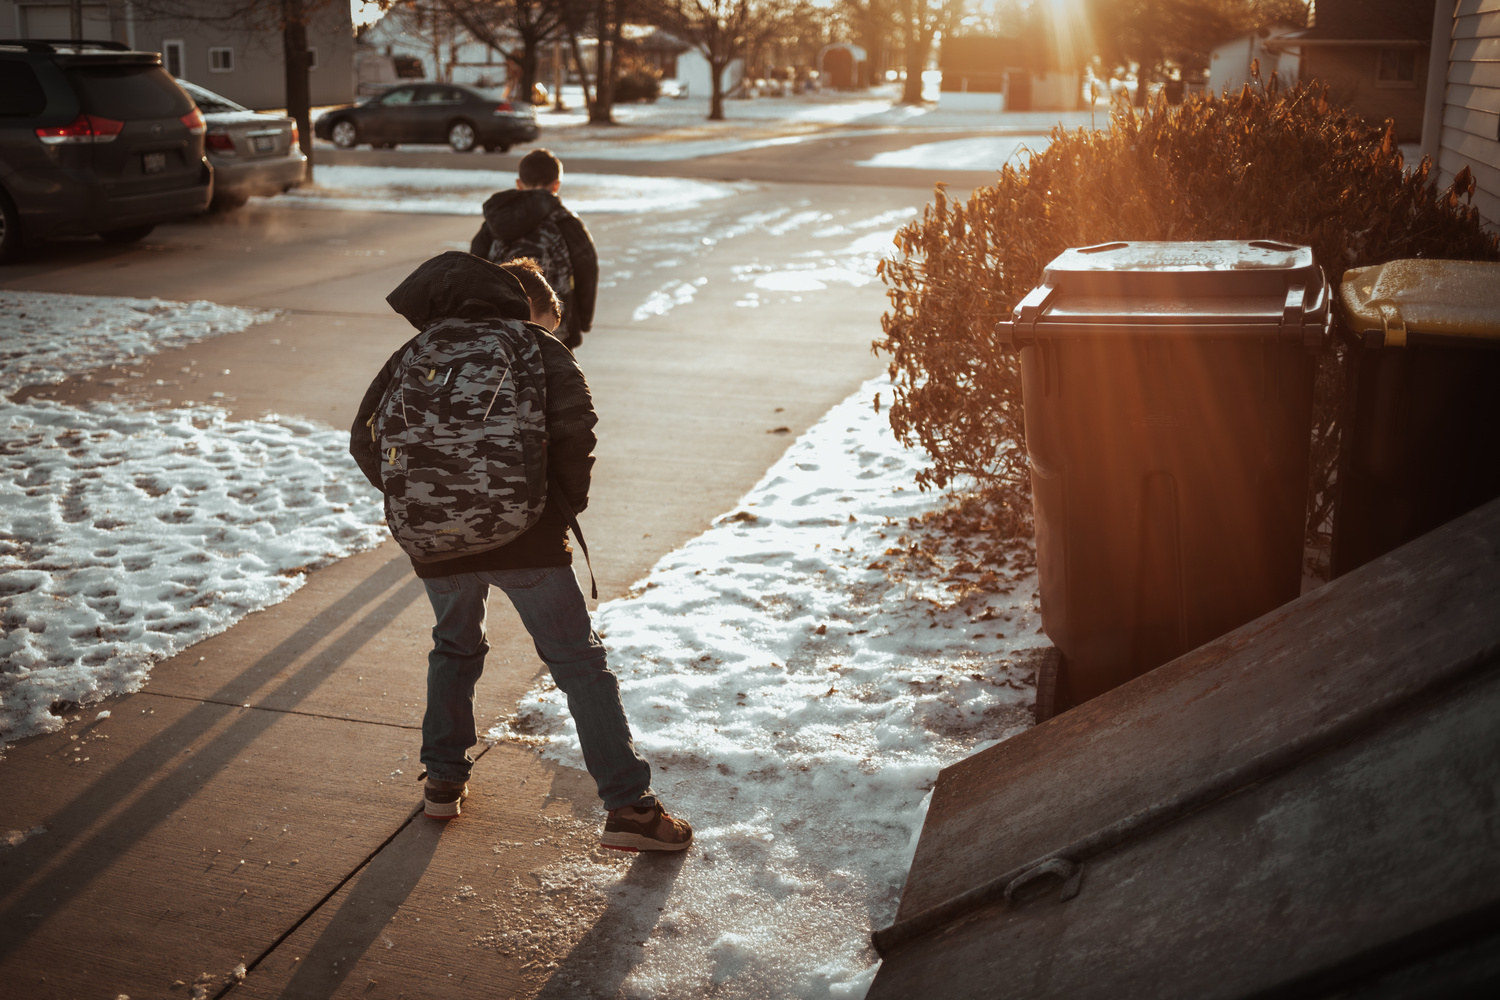 On the Way to School by Heather Wilson